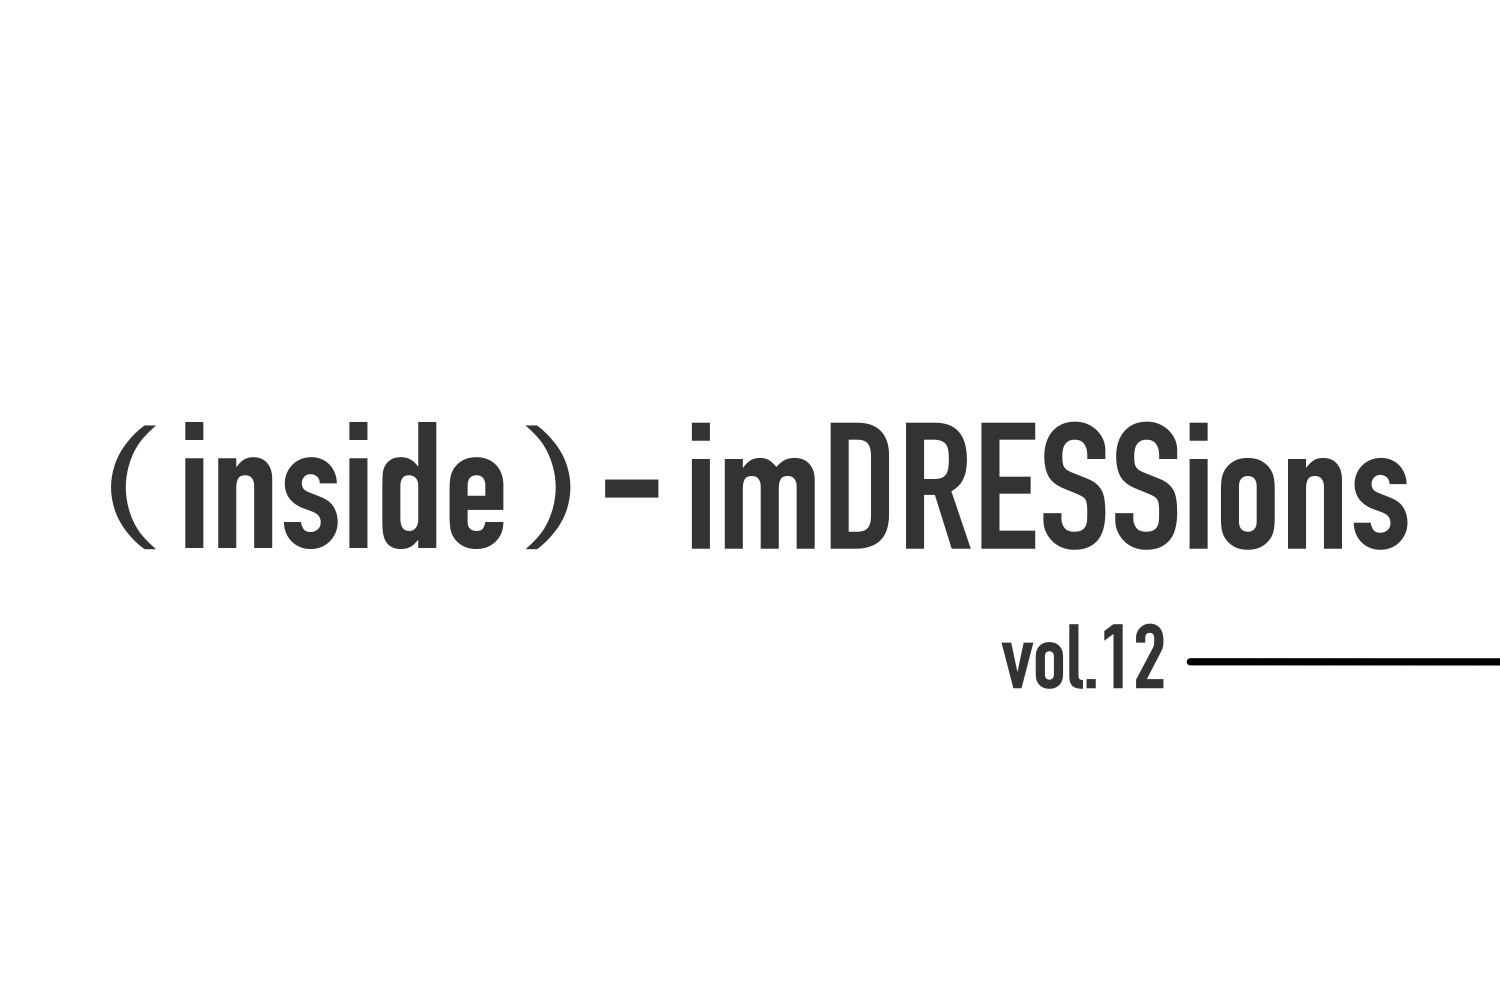 『(inside)-imDRESSions』vol.12-挑戦。